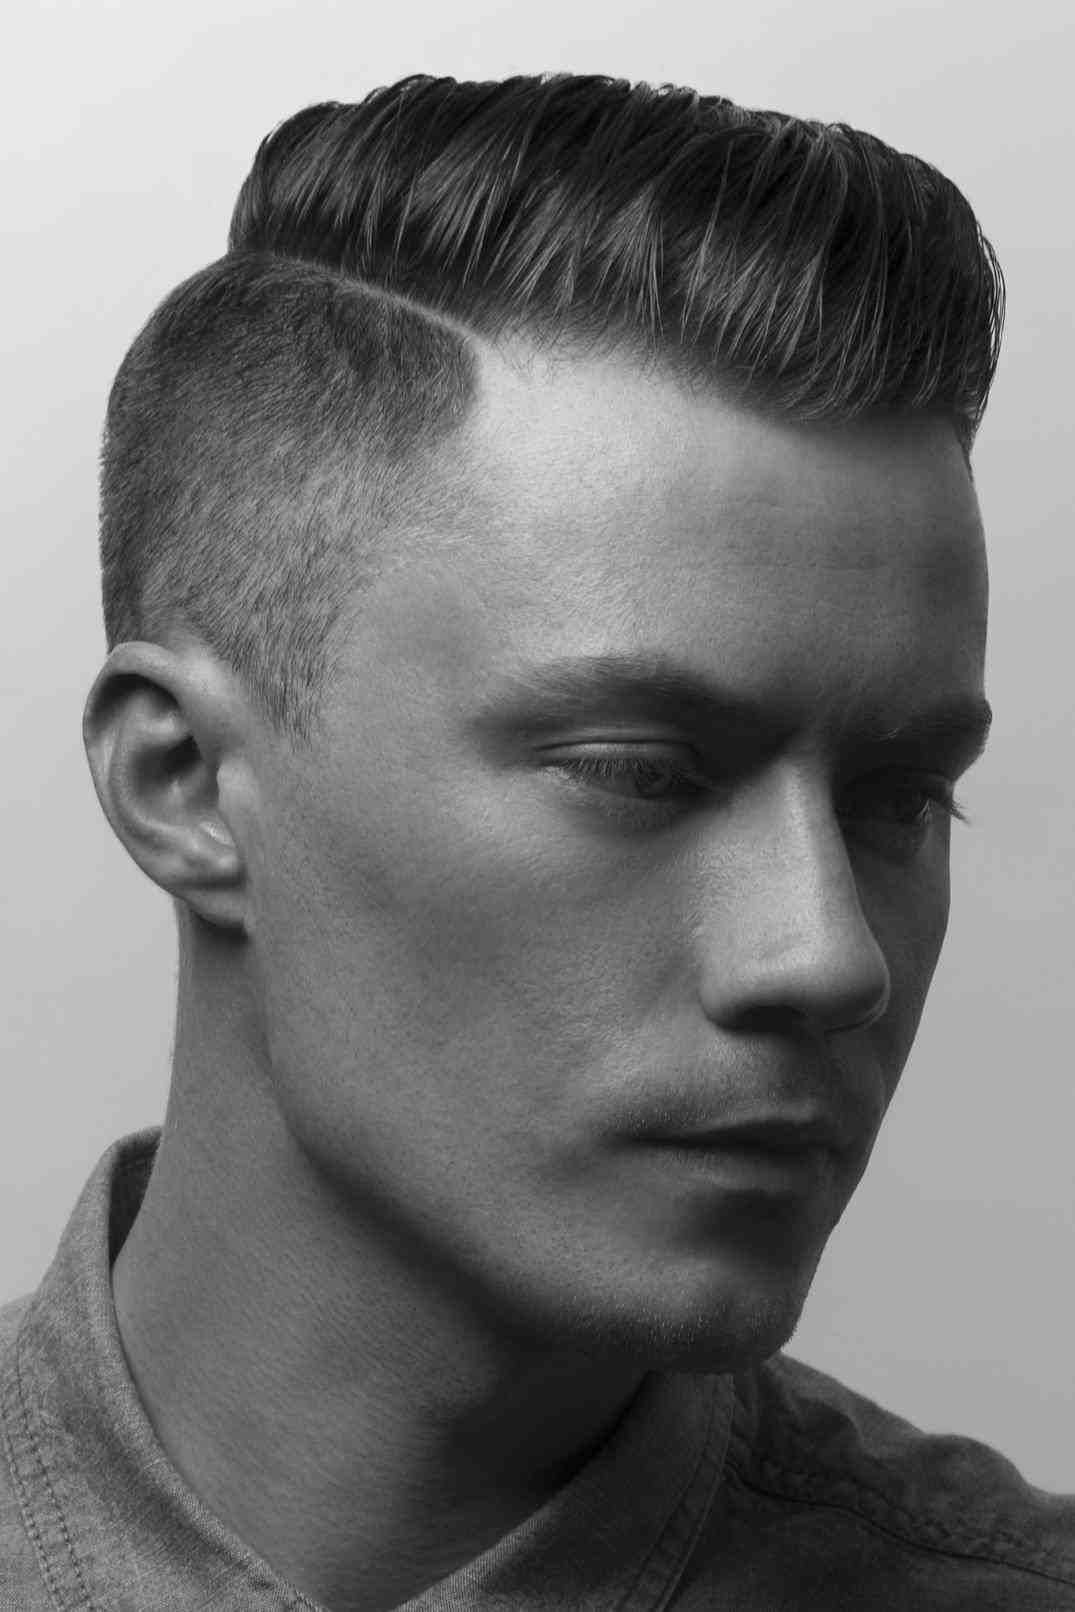 haircut designs for white boys | hair stylist and models